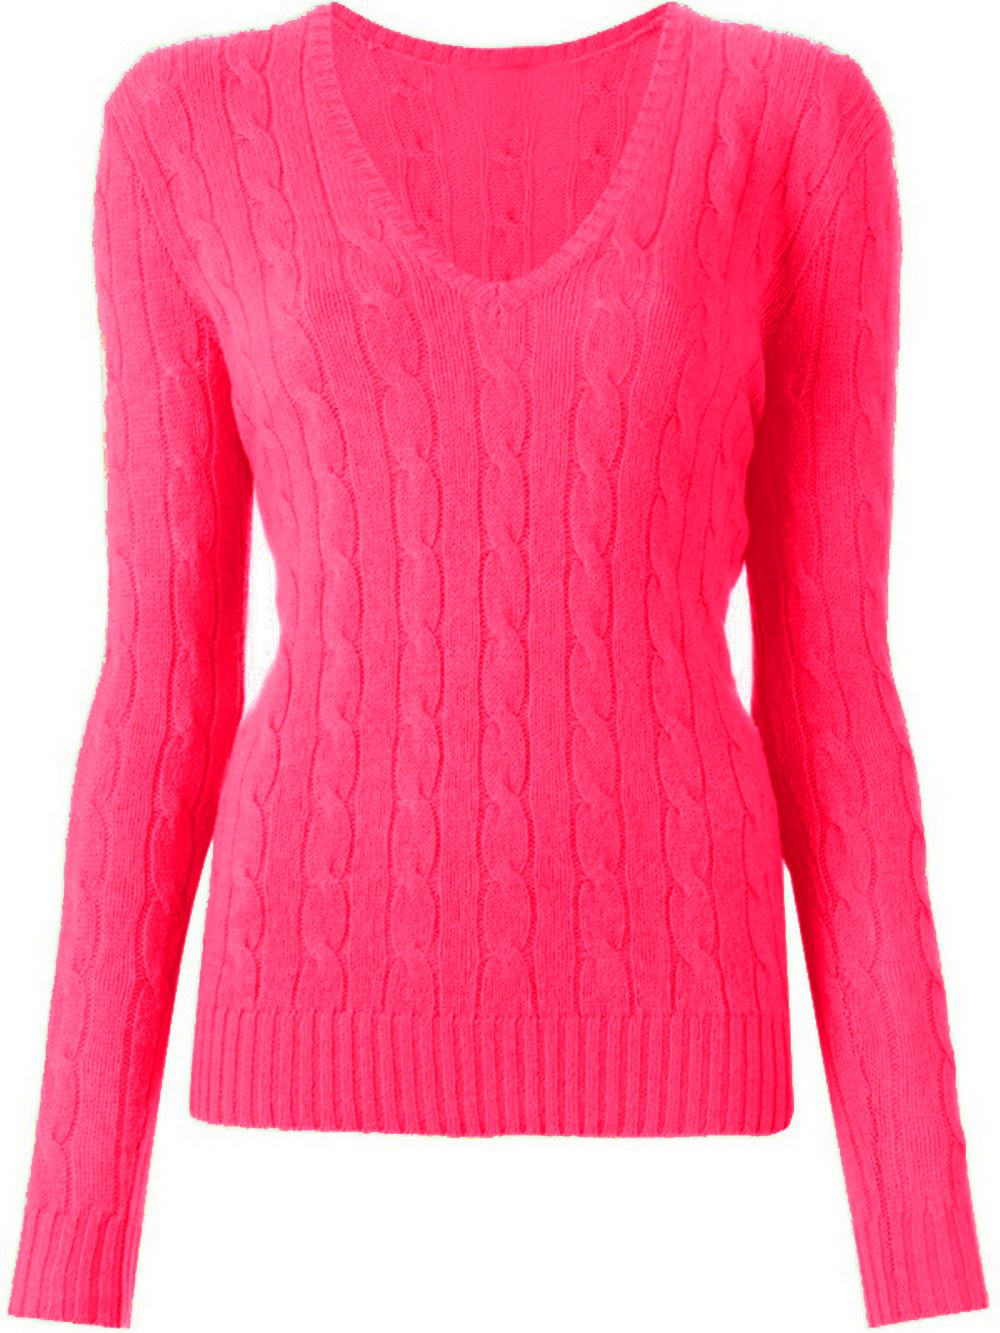 New Women's Ladies Luxury V Neck Cable Knitted Sweater Jumper Top ...